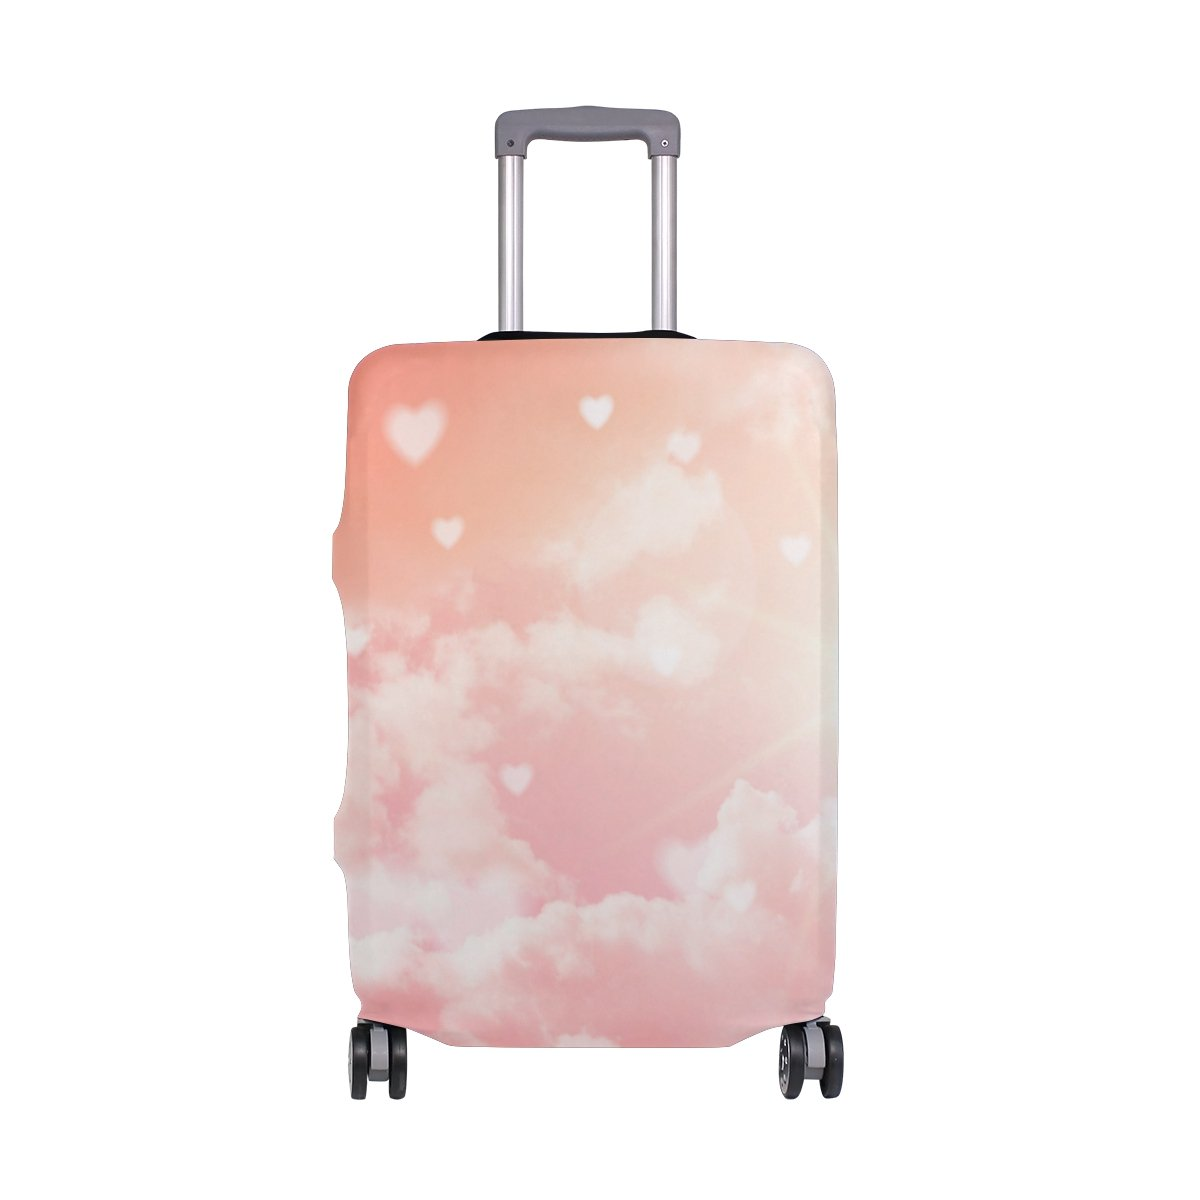 My Daily Hearts Clouds Valentine's Day Wedding Luggage Cover Fits 24-26 Inch Suitcase Spandex Travel Protector M